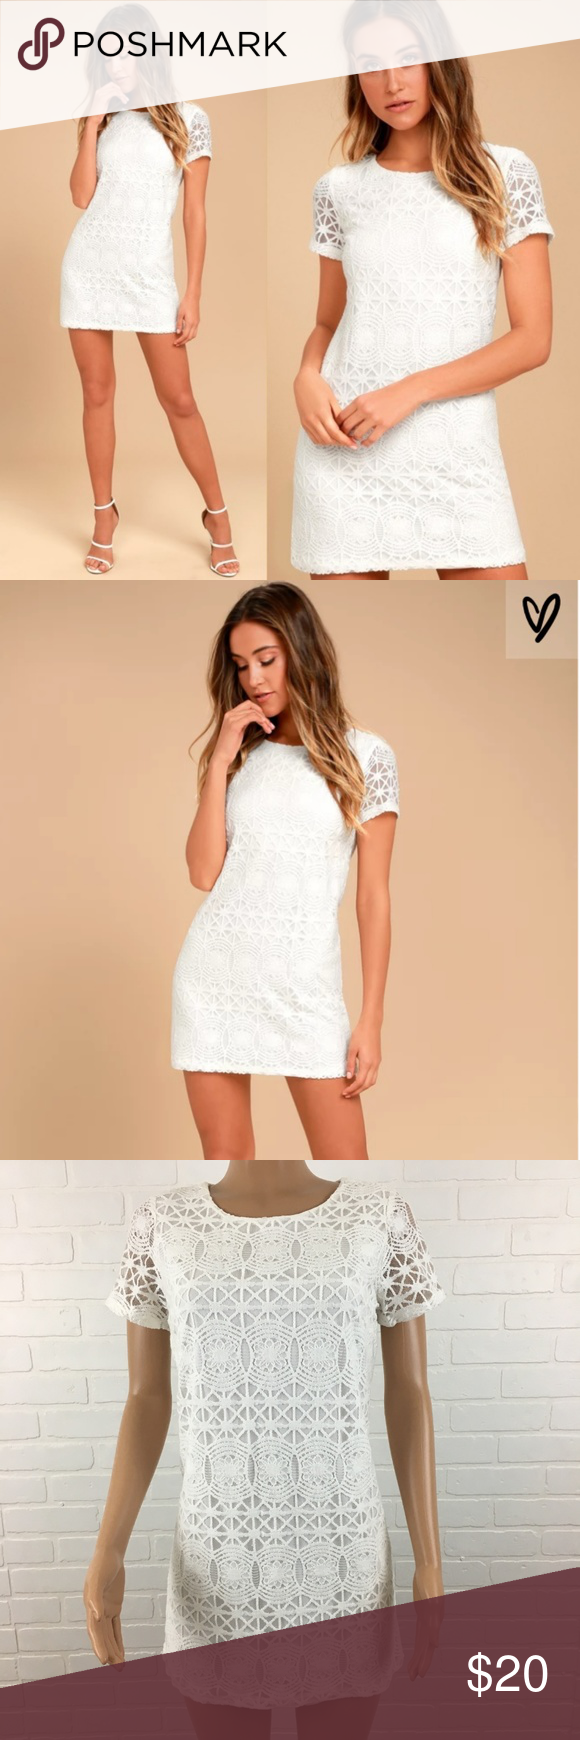 Lulus Love You For Eternity White Lace Shift Dress White Lace Shift Dress Lace Shift Dress Dresses [ 1740 x 580 Pixel ]